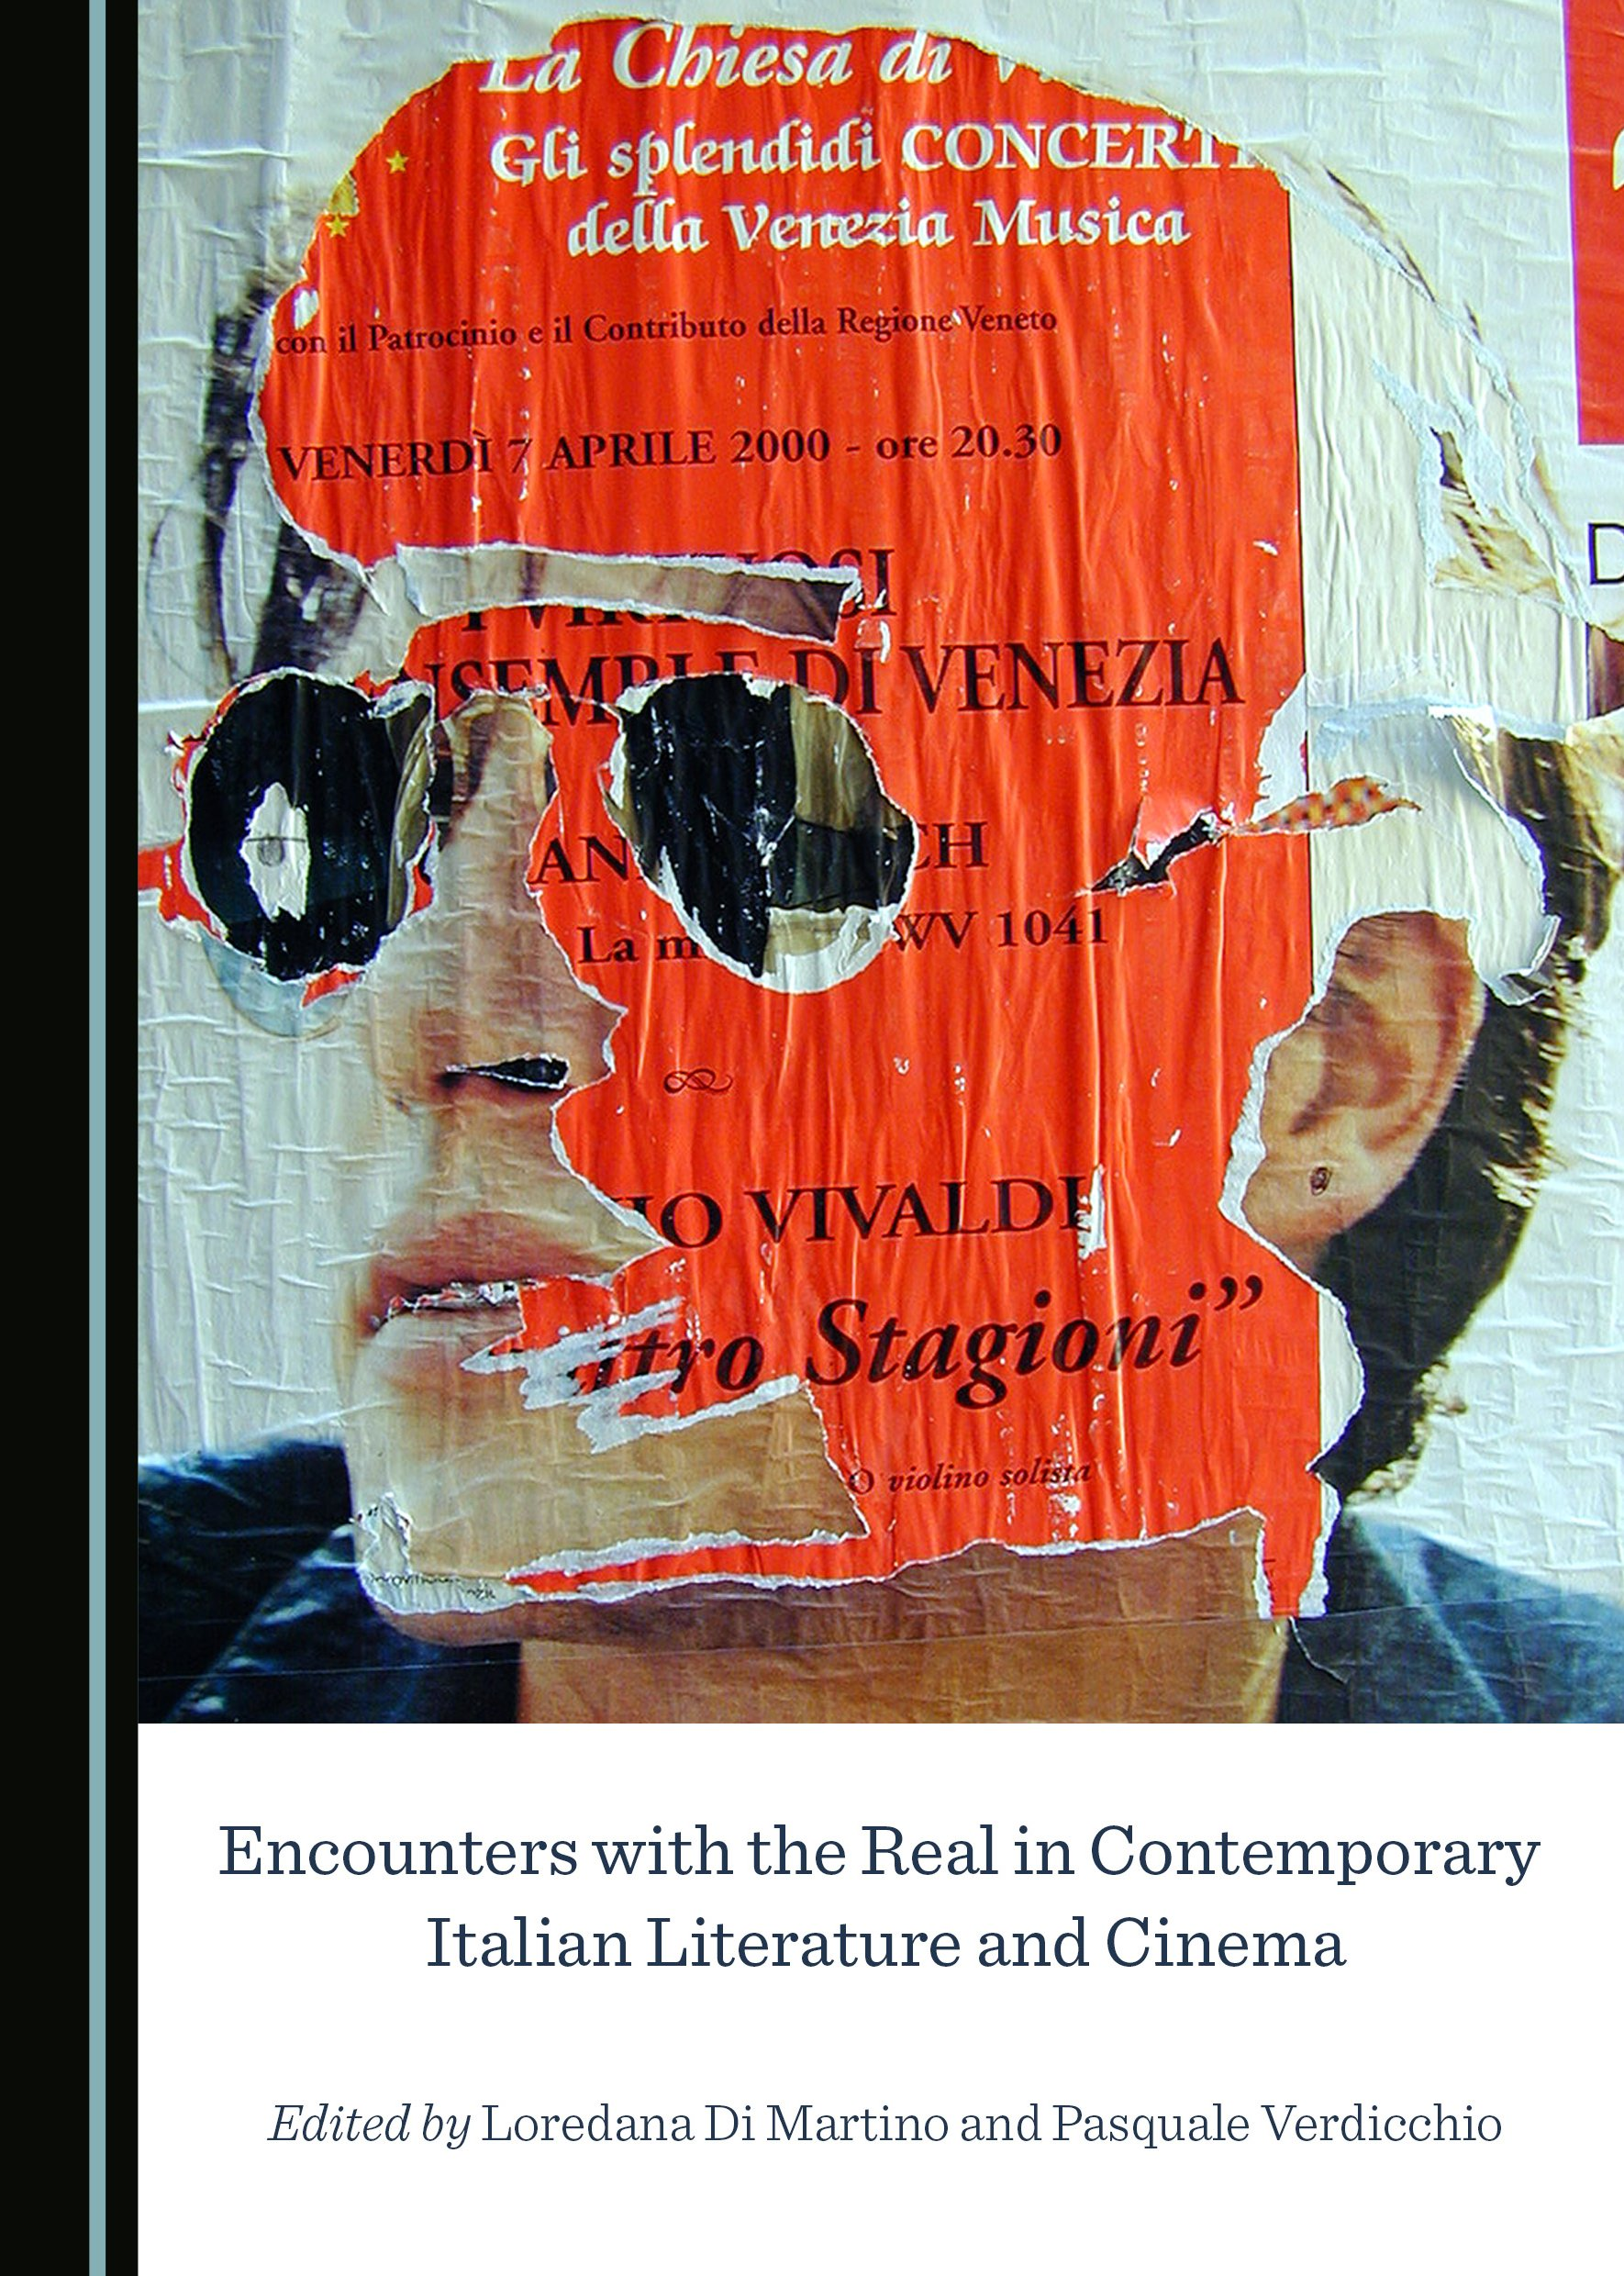 Encounters with the Real in Contemporary Italian Literature and Cinema